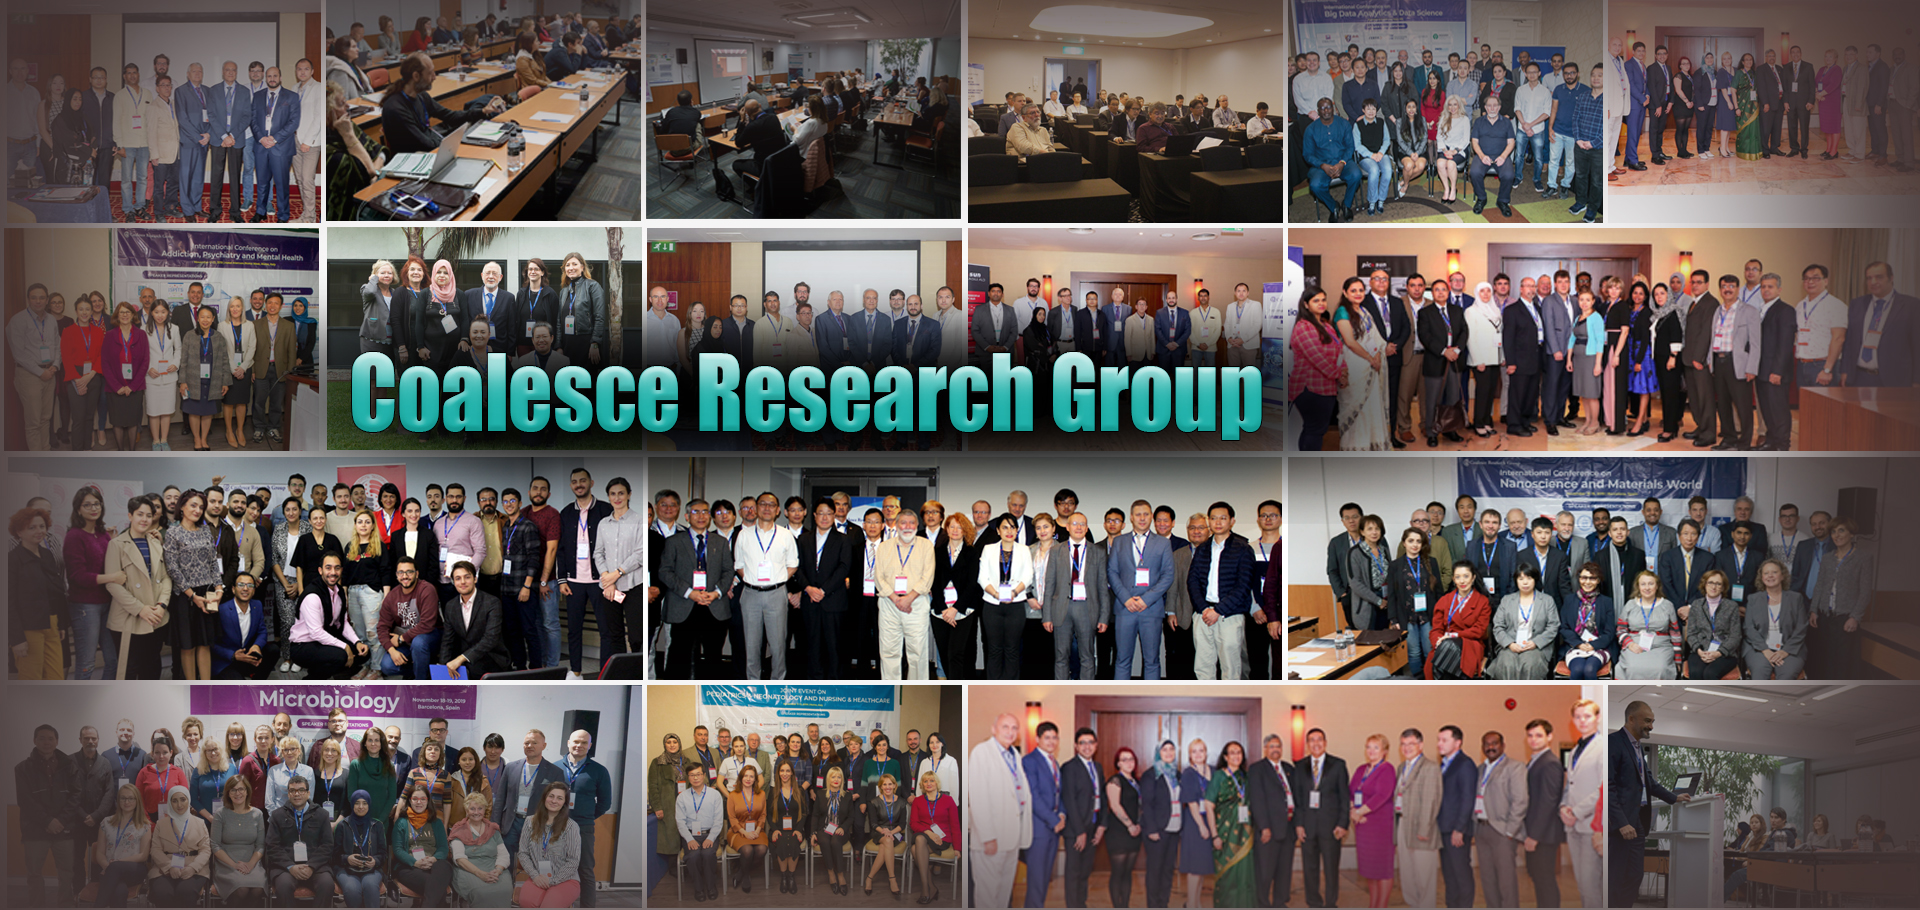 COALESCE RESEARCH GROUP